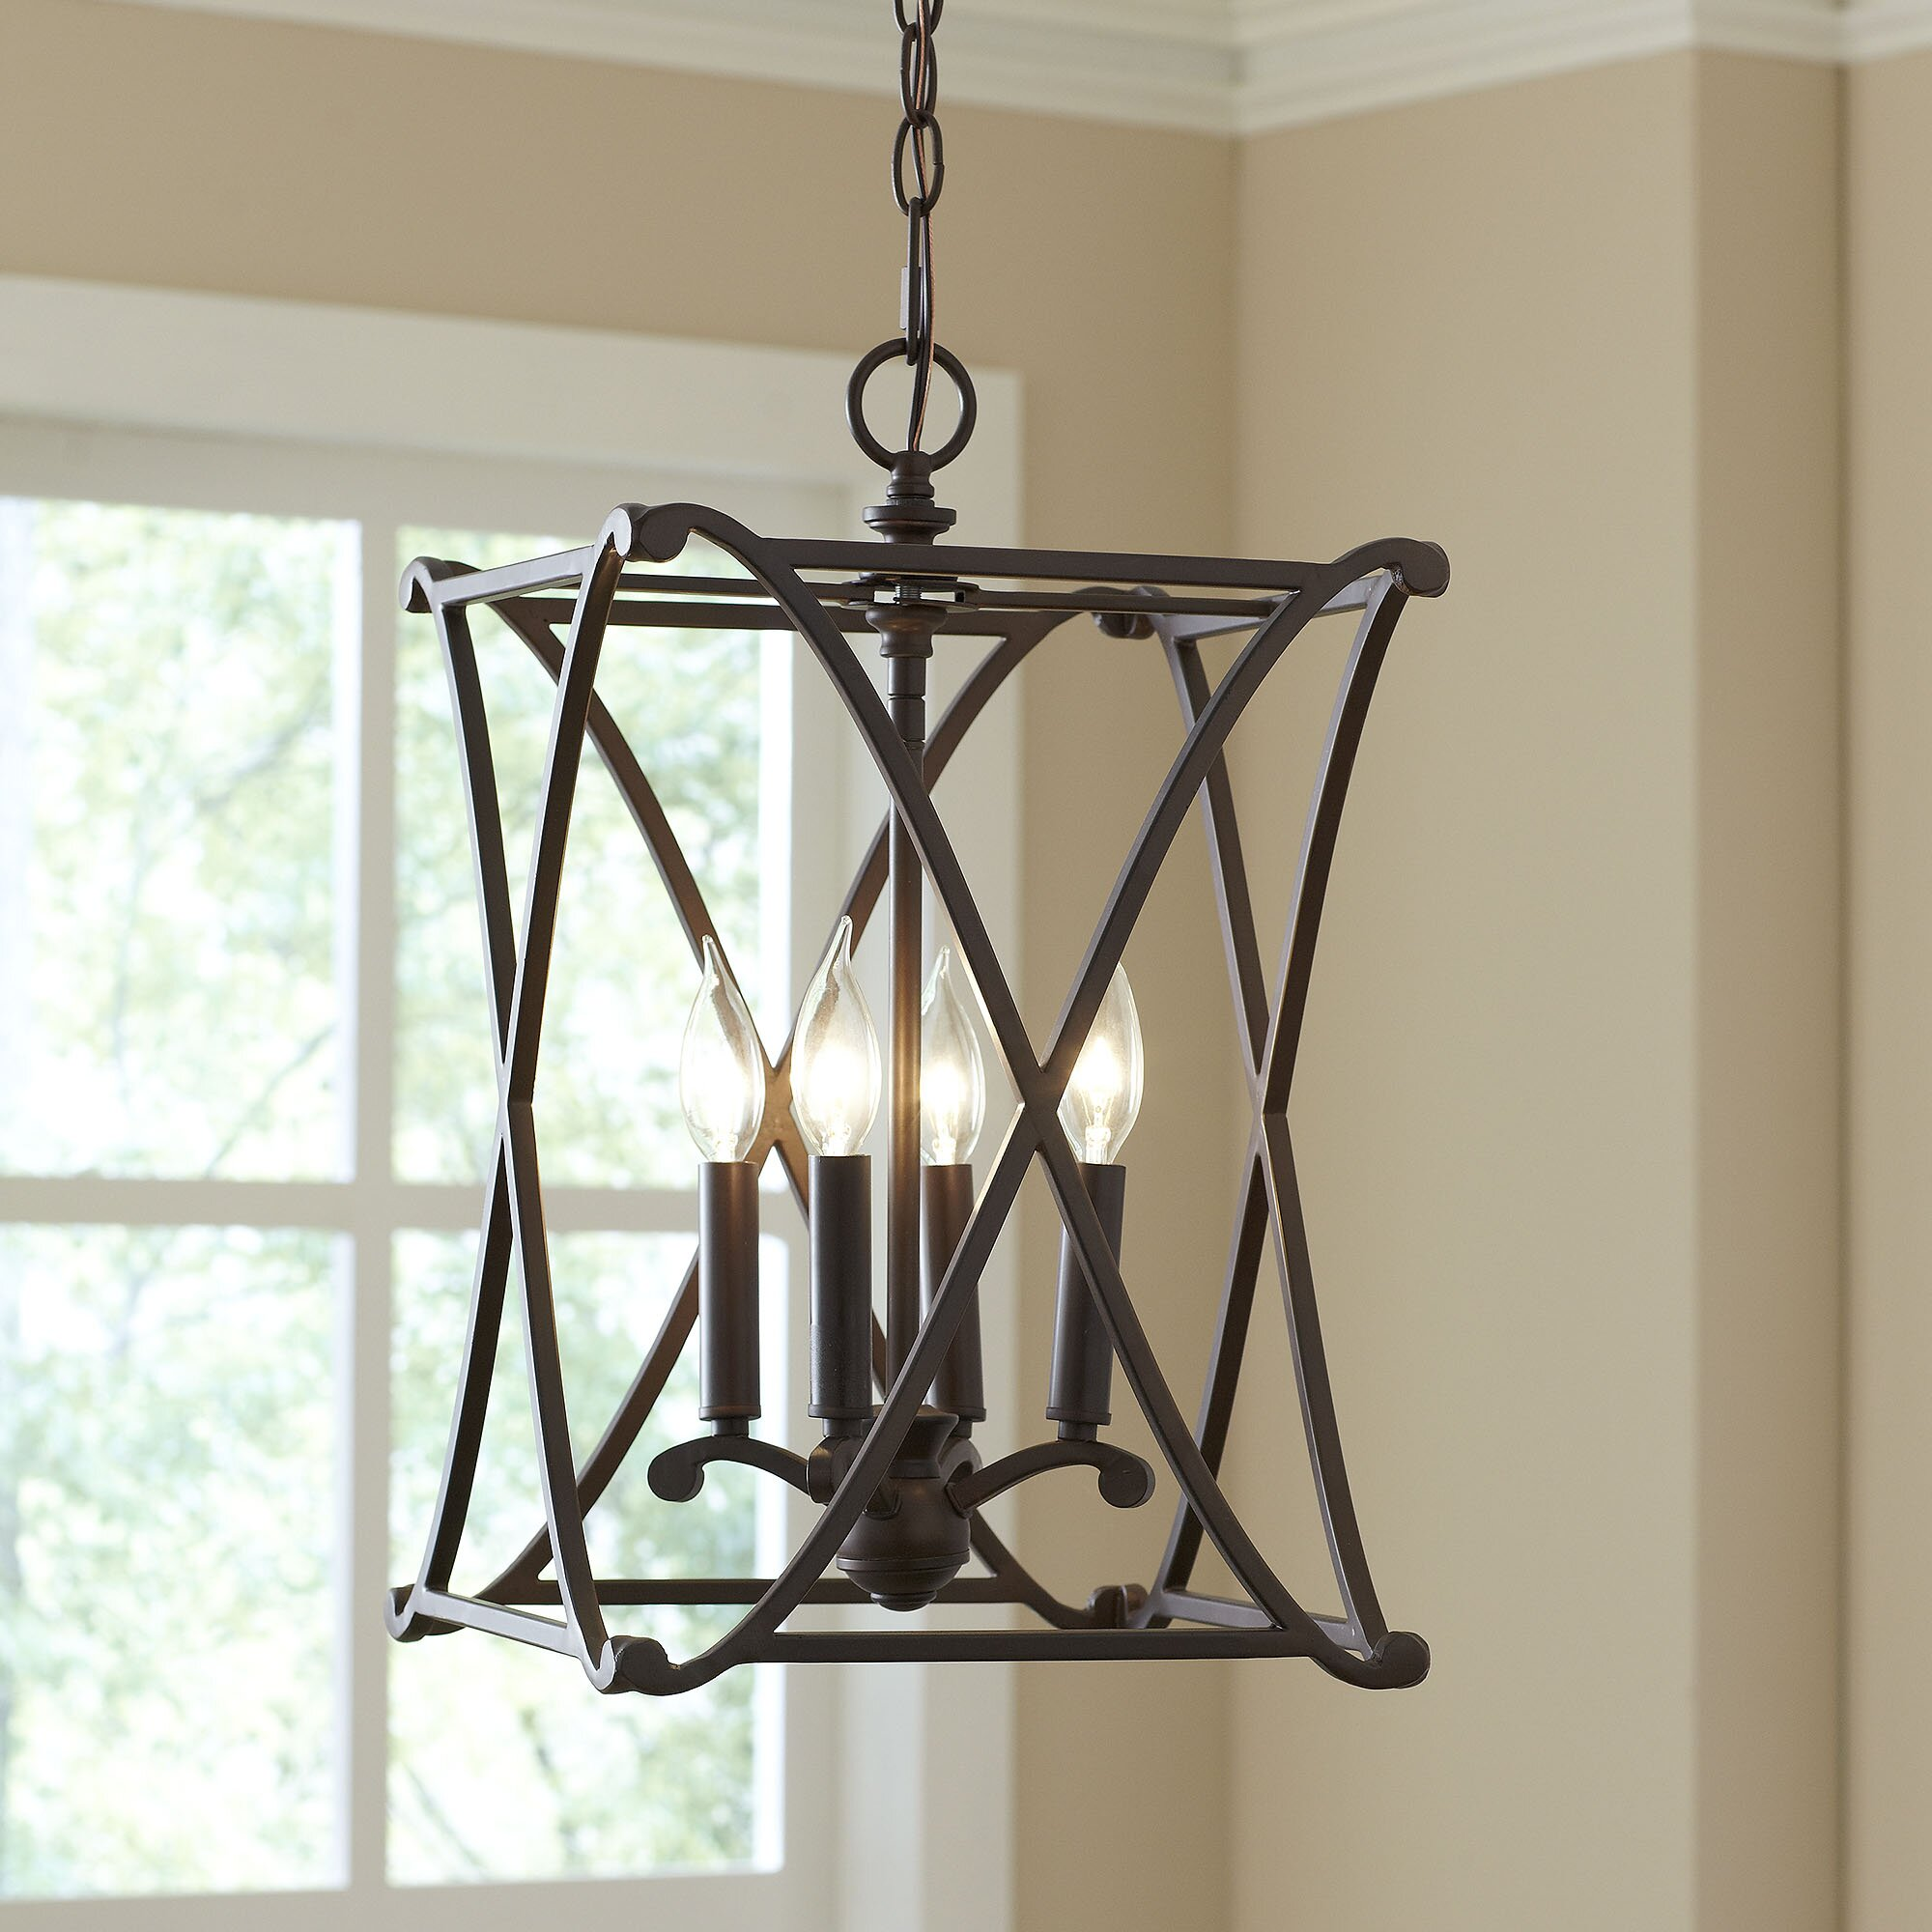 Birch Lane Geor own Pendant & Reviews